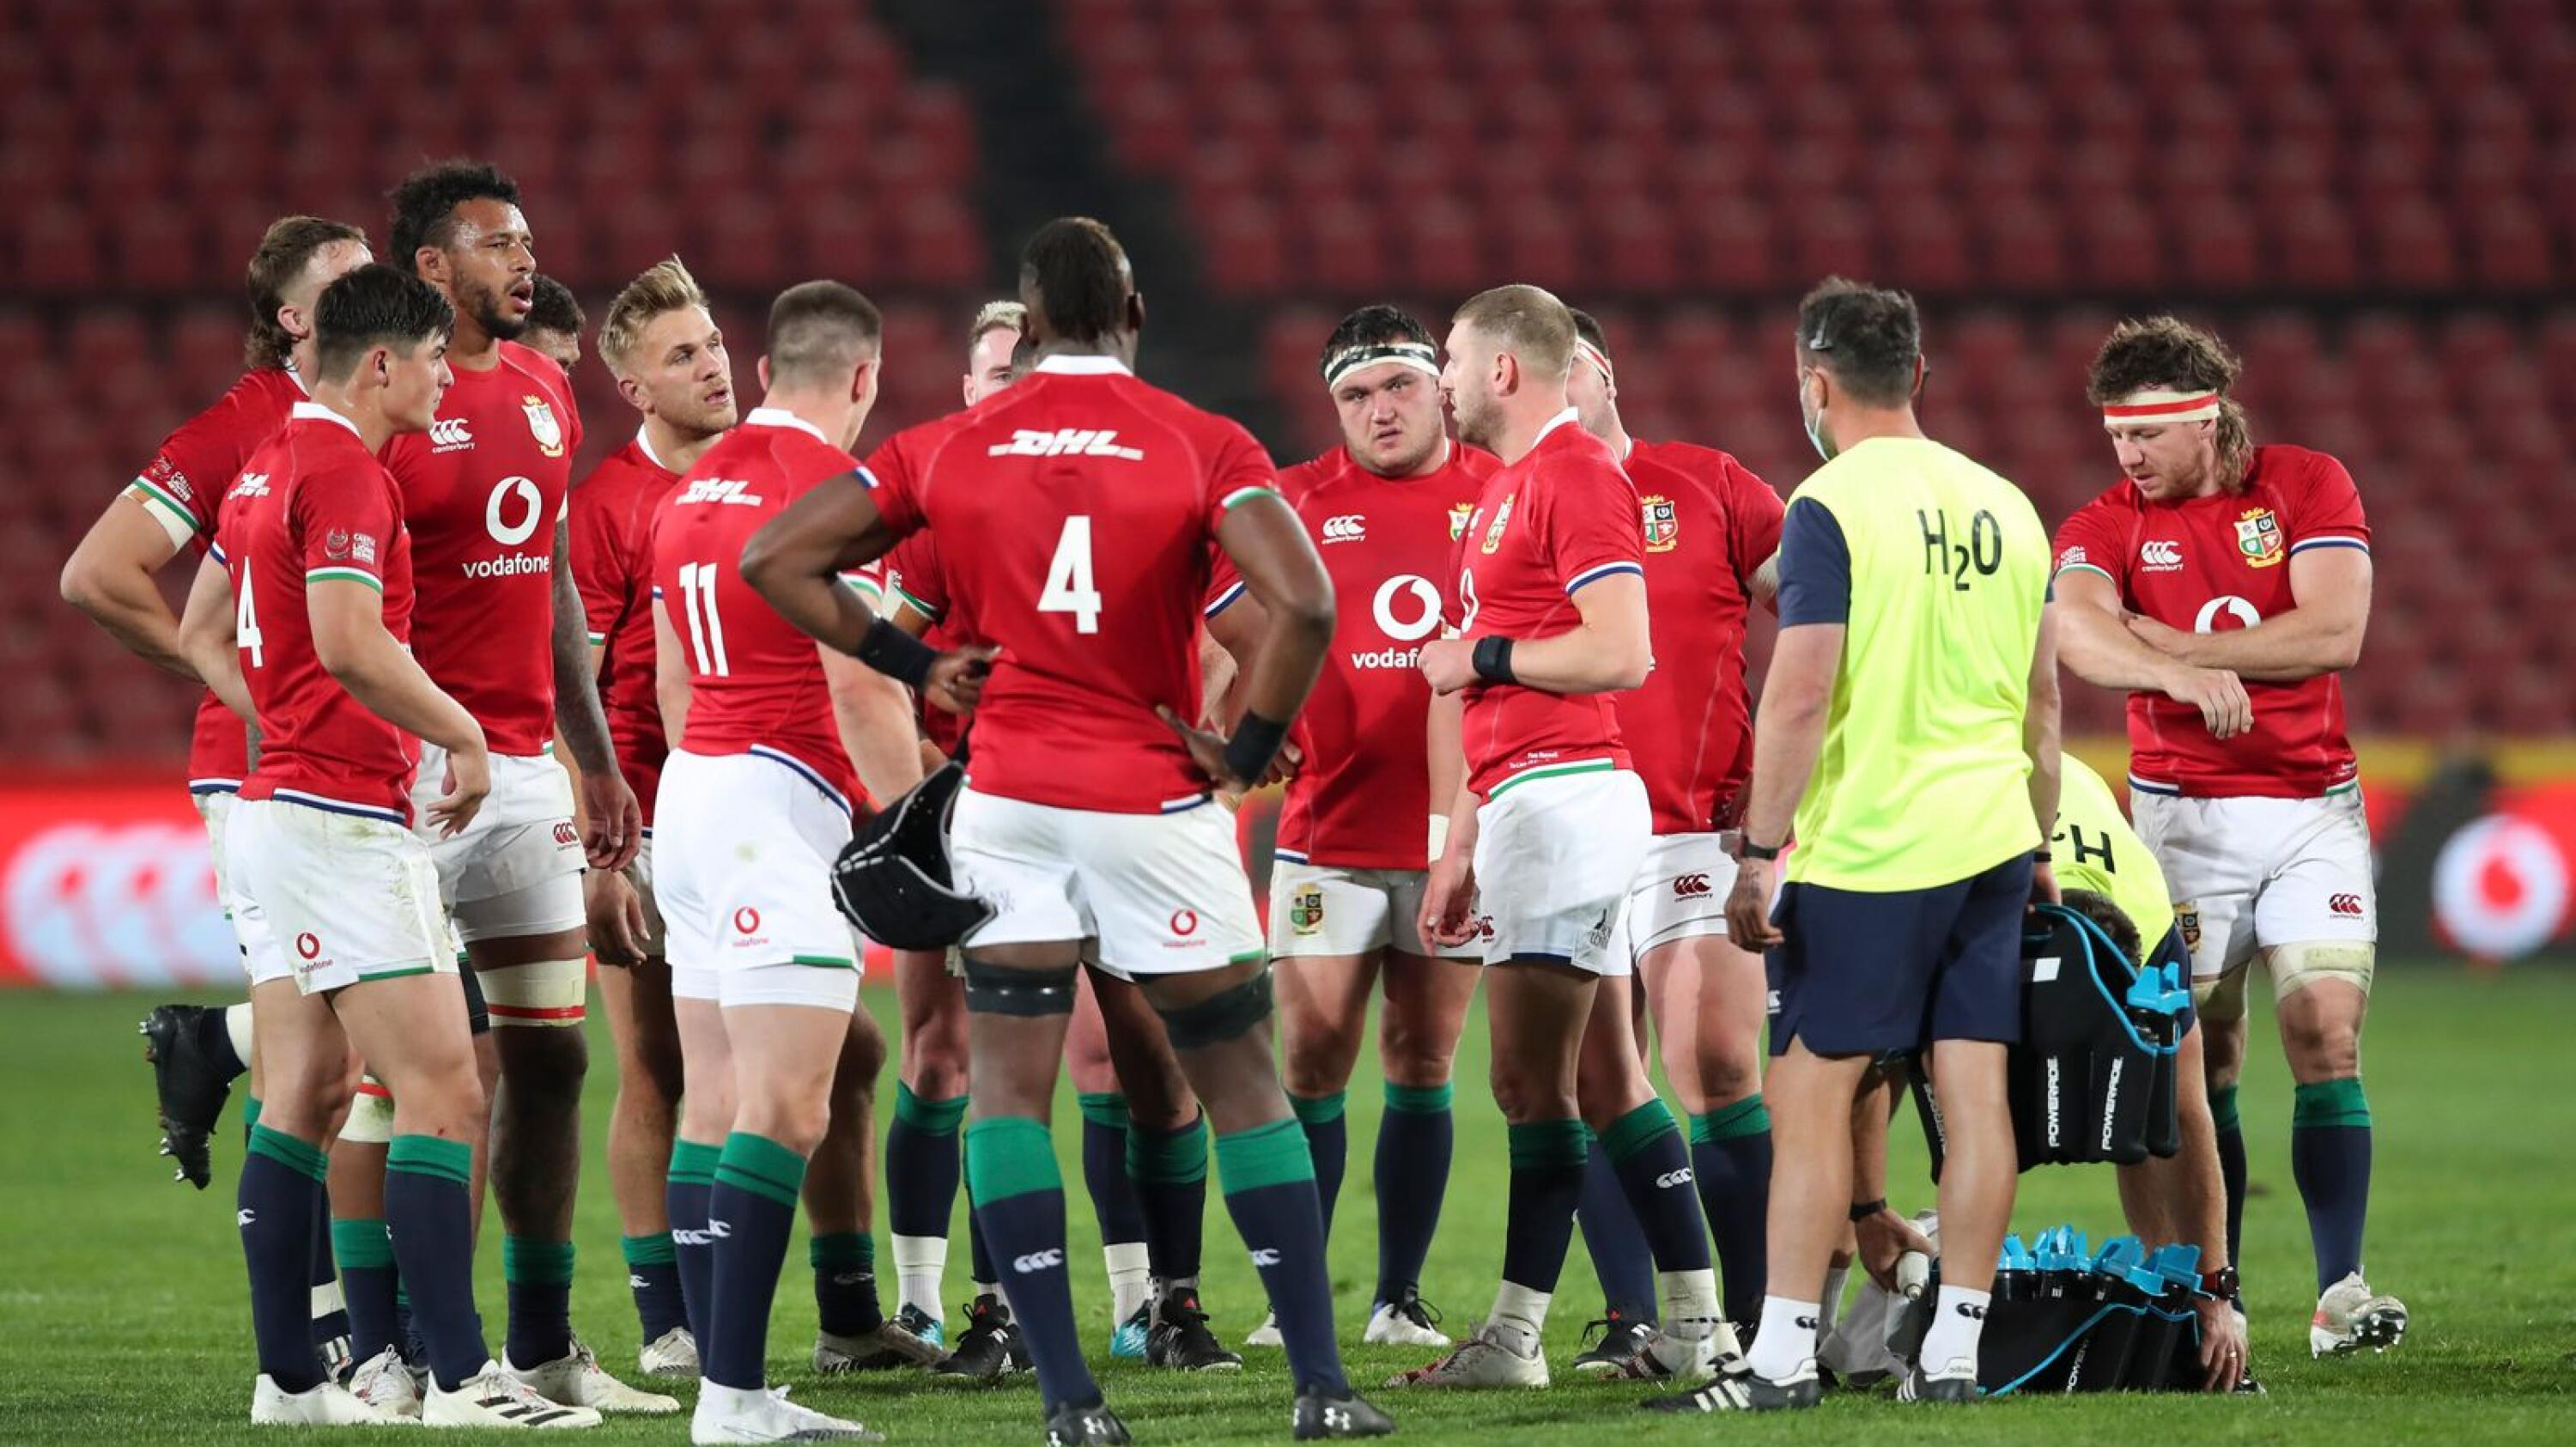 British and Irish Lions players huddle during their game against the Lions last weekend